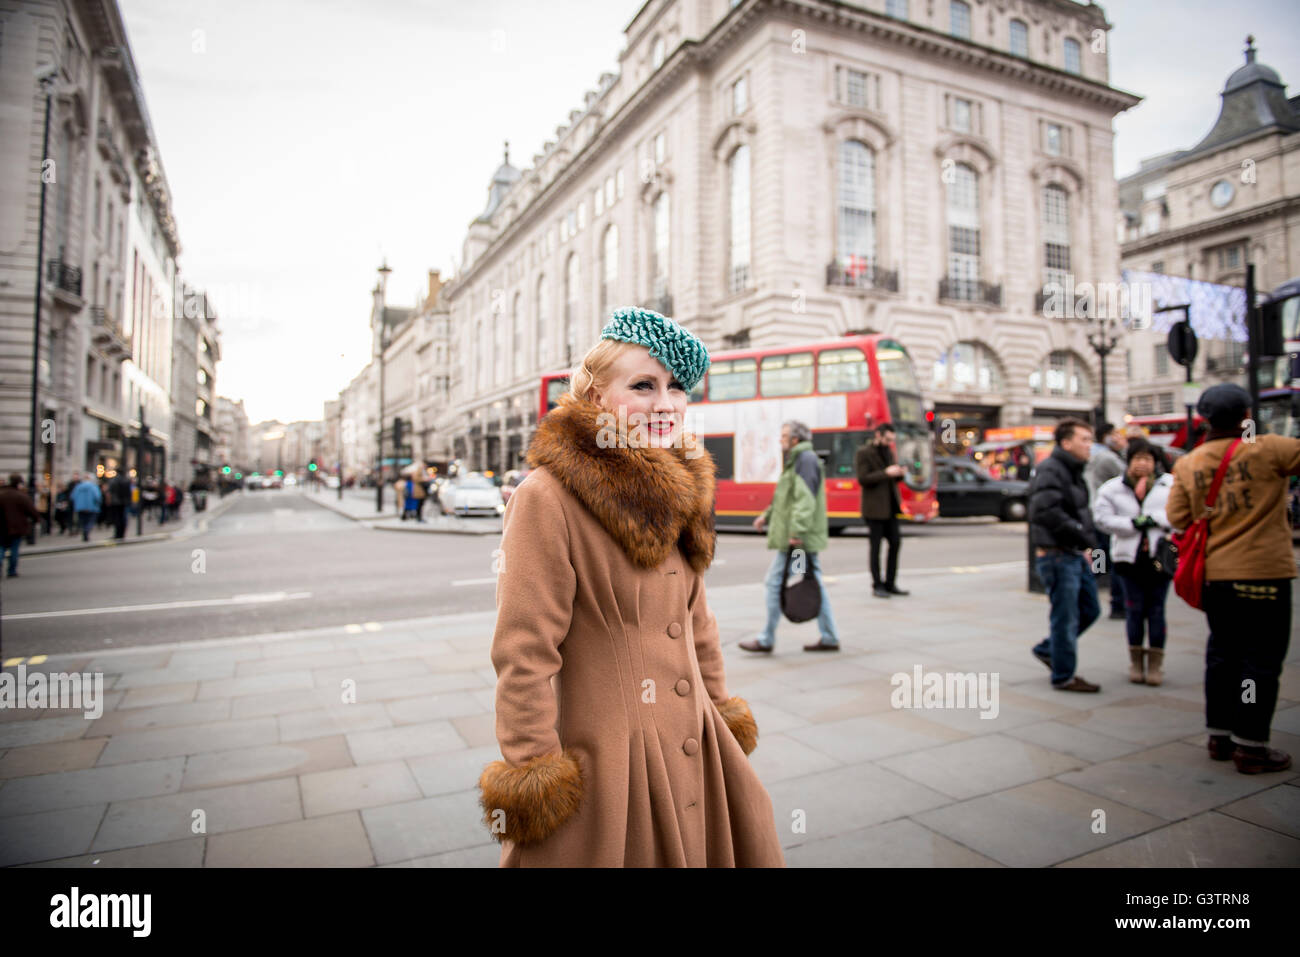 A stylish young woman dressed in 1930s style clothing walking about at Piccadilly Circus. - Stock Image